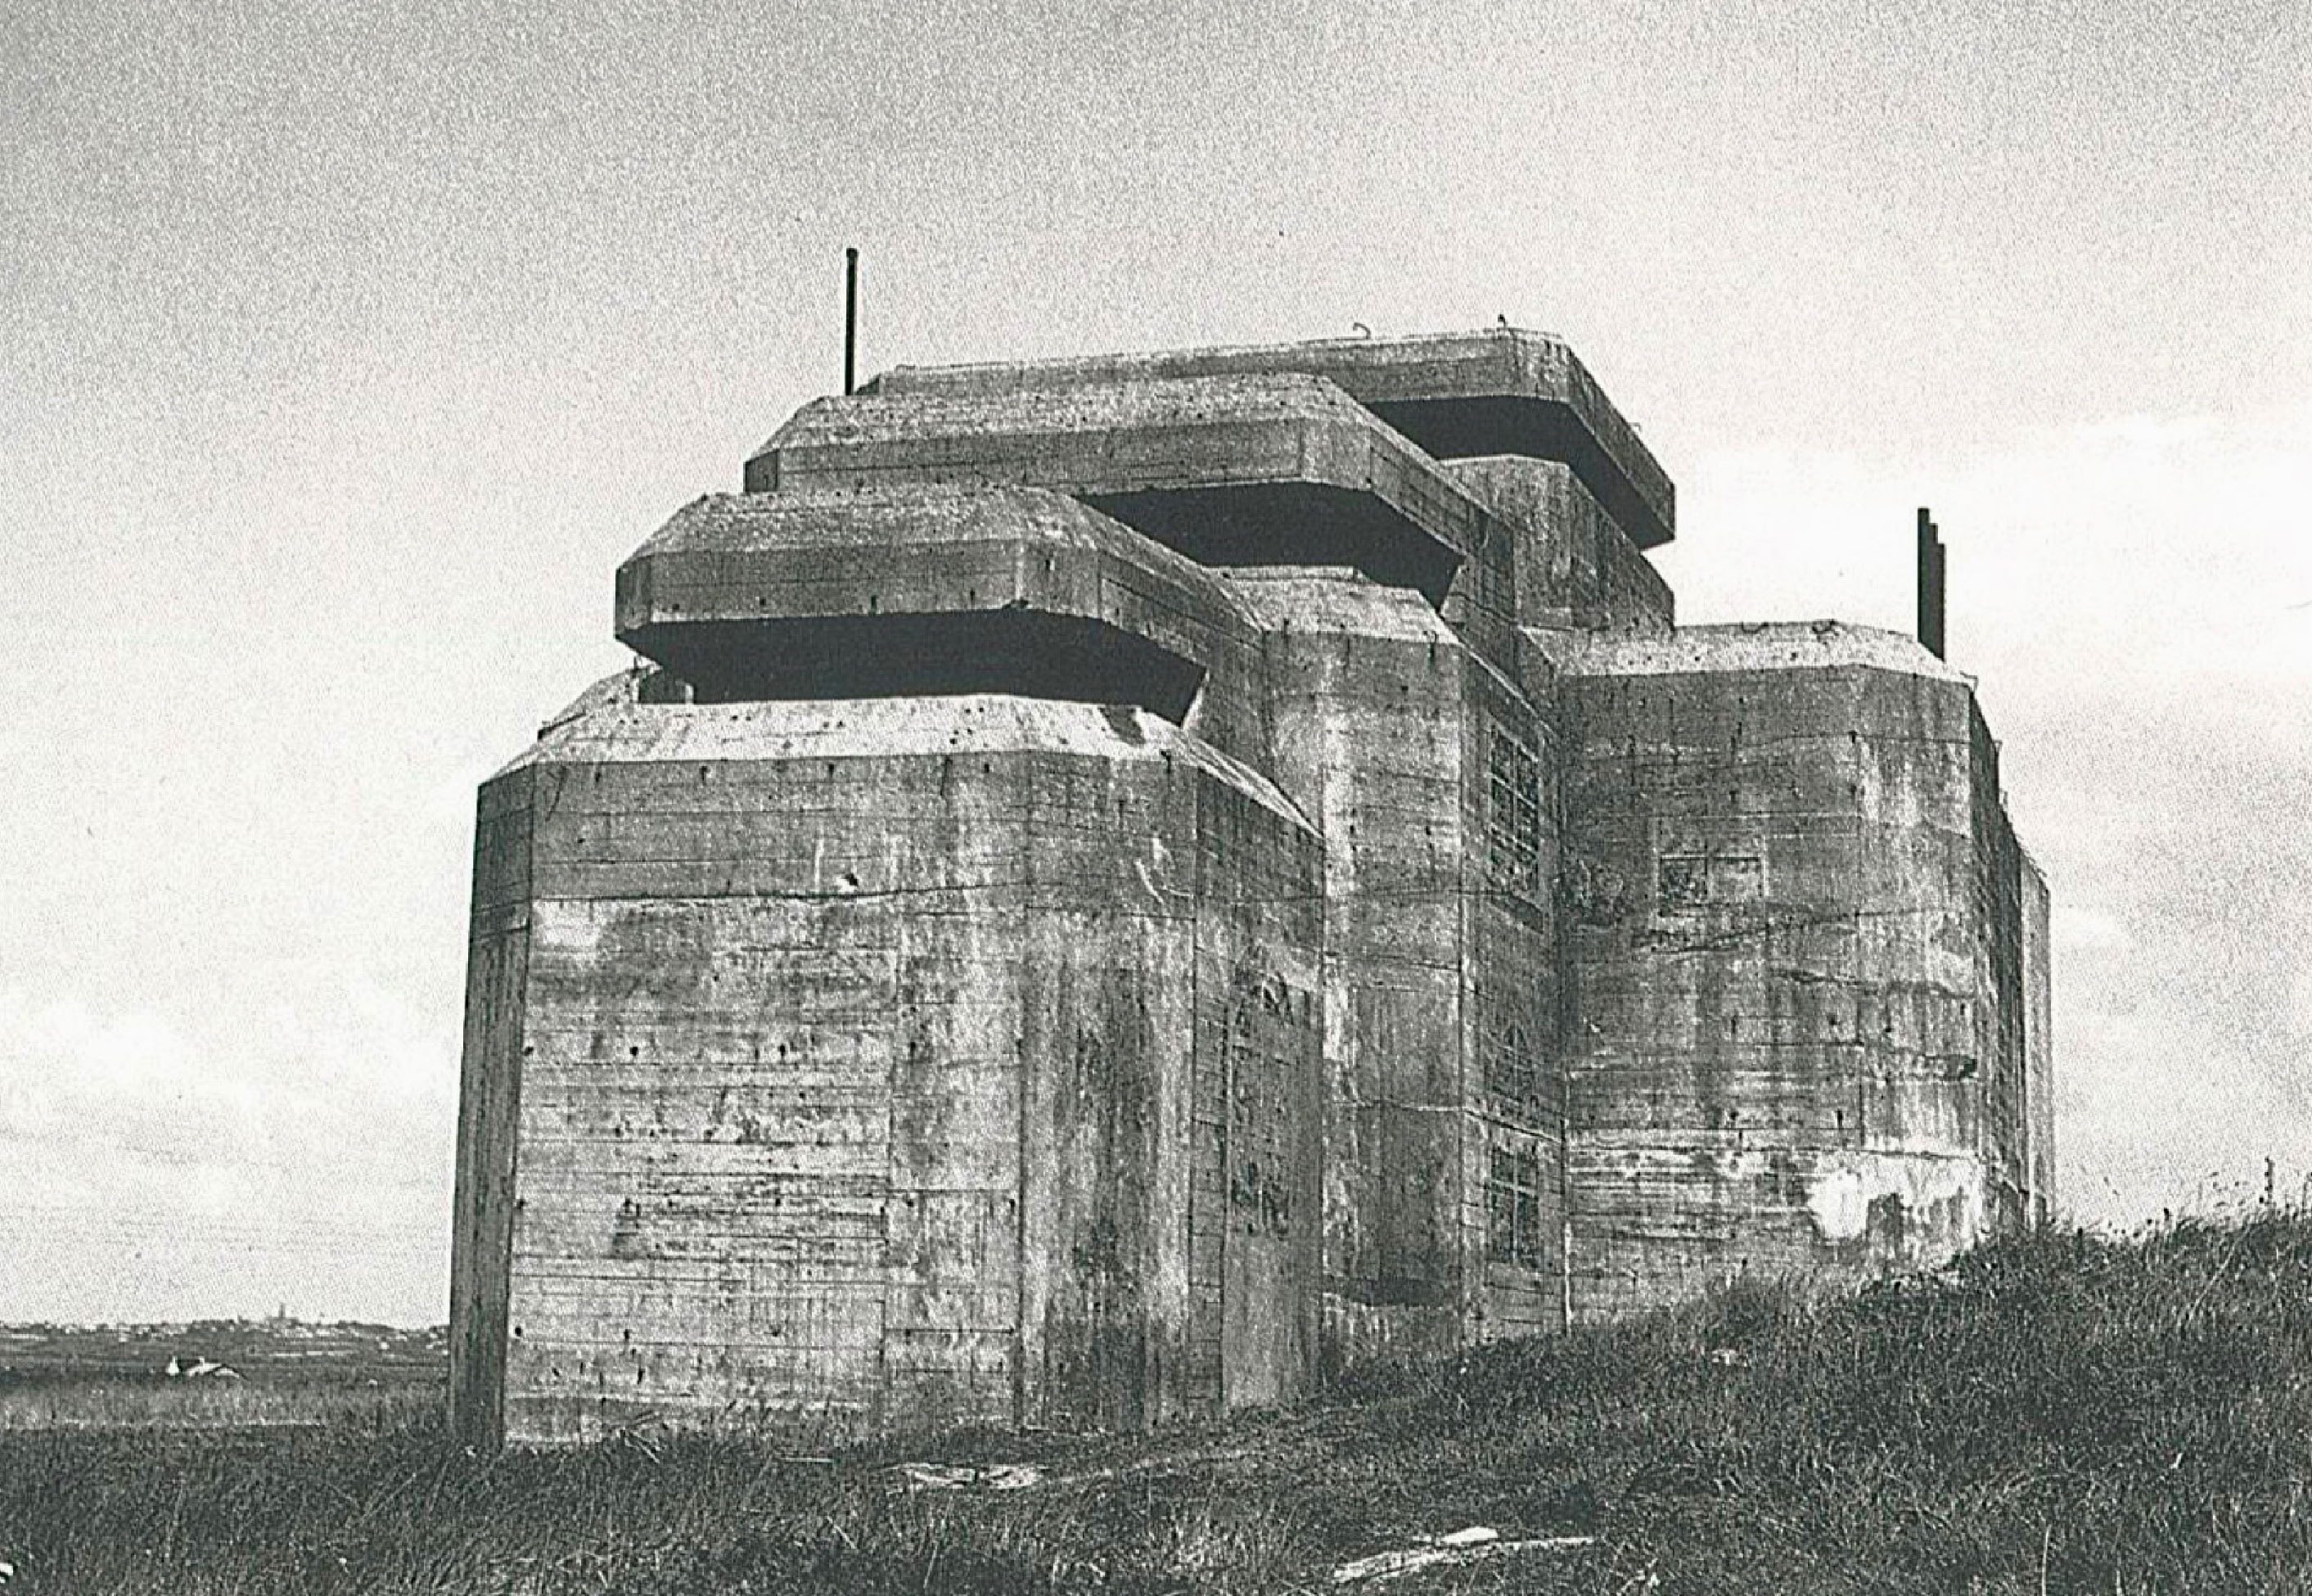 Reference photograph of WWII Bunker